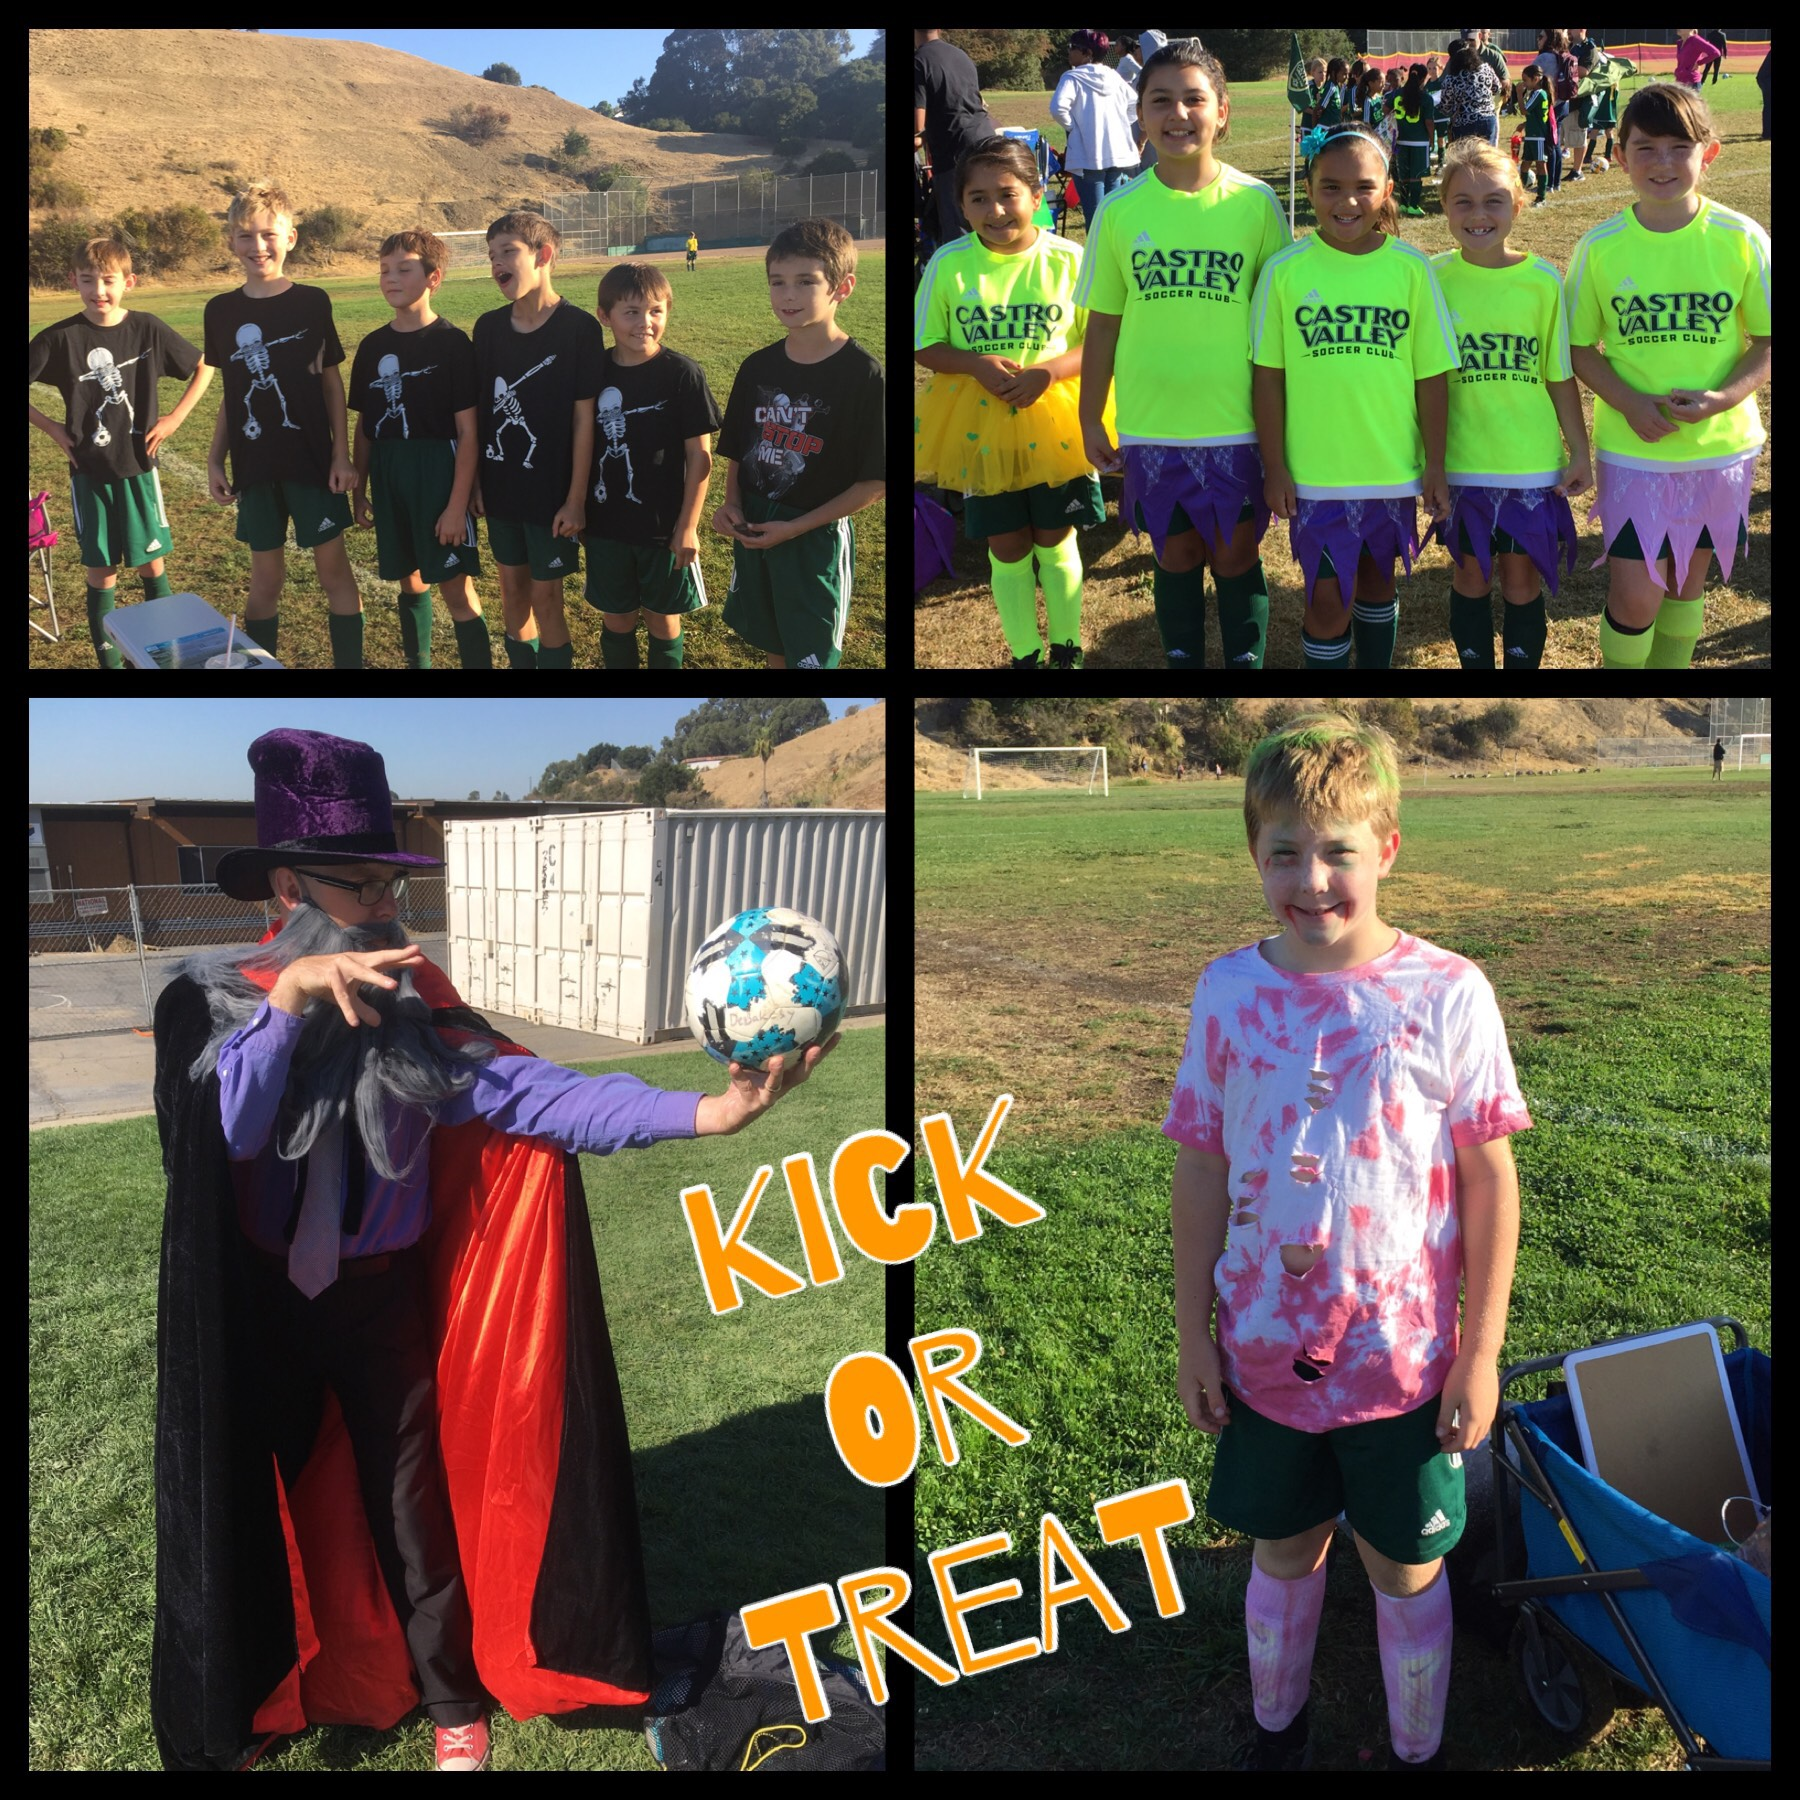 Bumblebees & Grasshoppers Kick or Treat Game Day Event